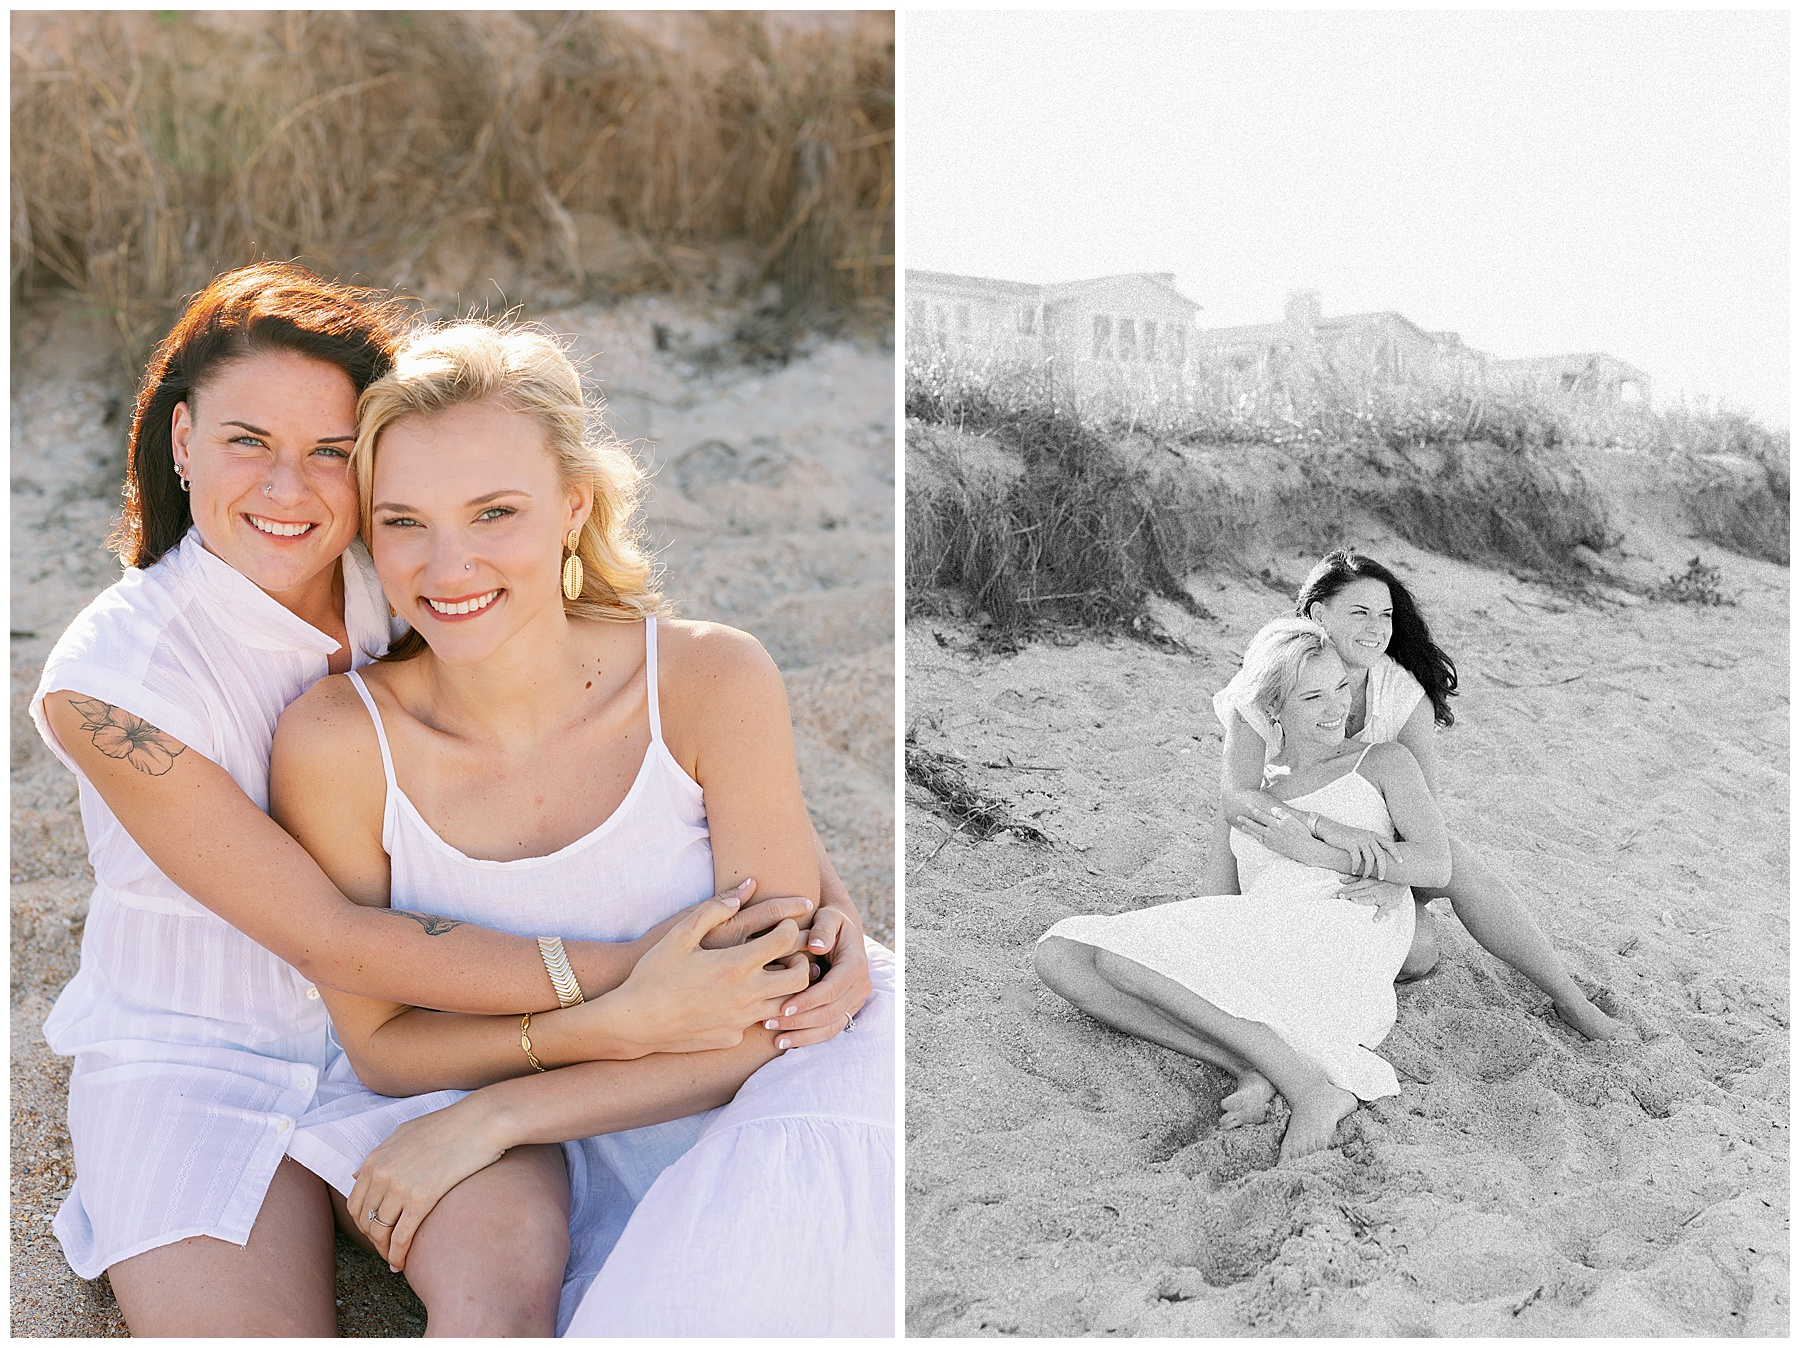 LGBTQ+ couple smile and embrace in the sand